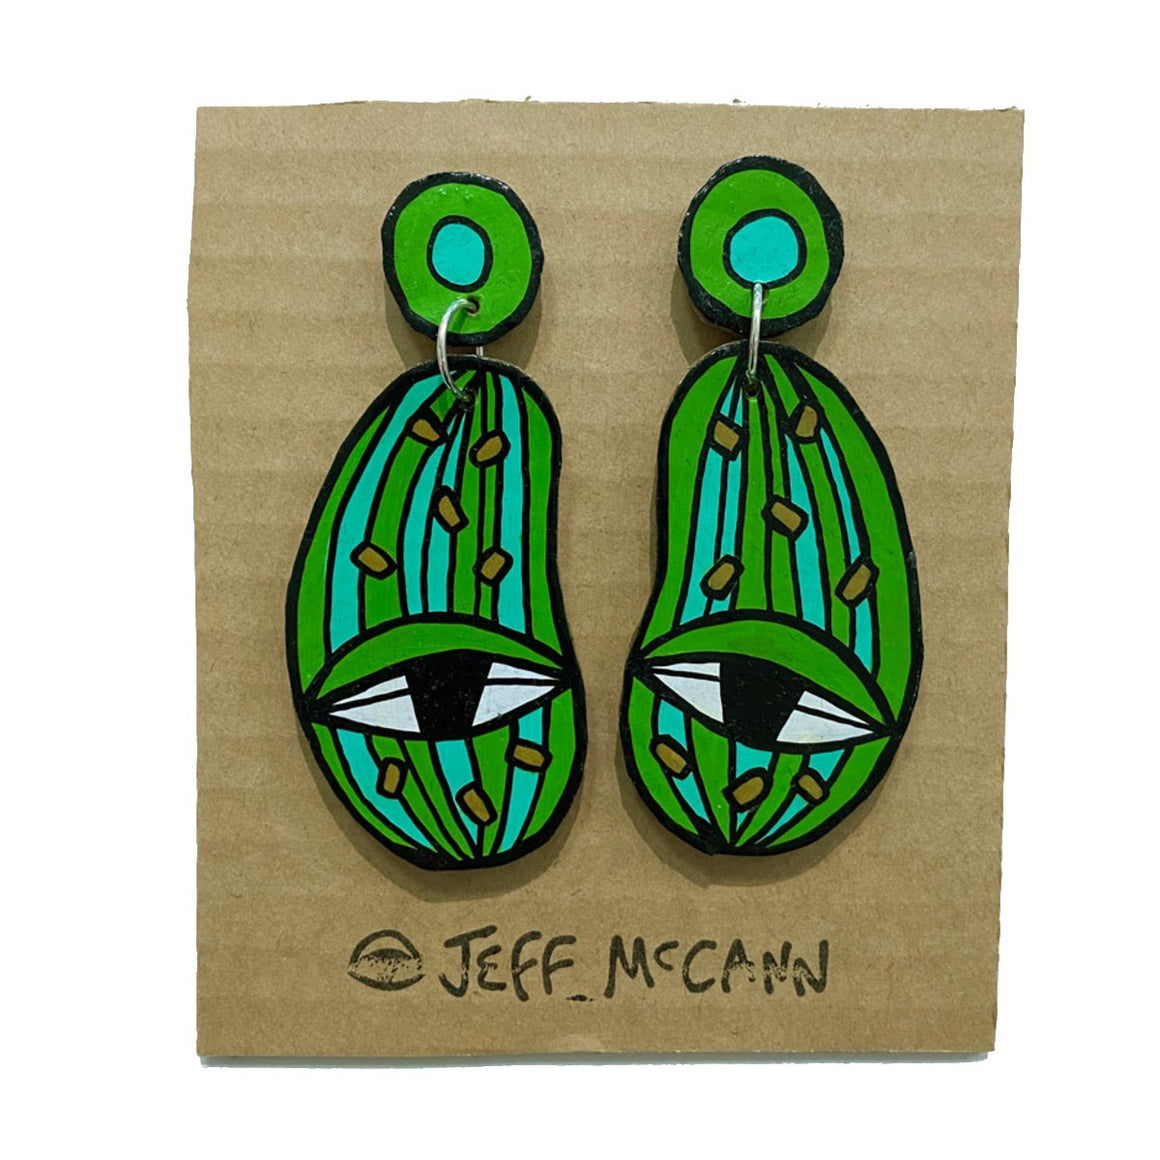 A pair of Jeff McCann drop earrings featuring eyes and cactus and jellybean inspired colours and shapes in green white and black.